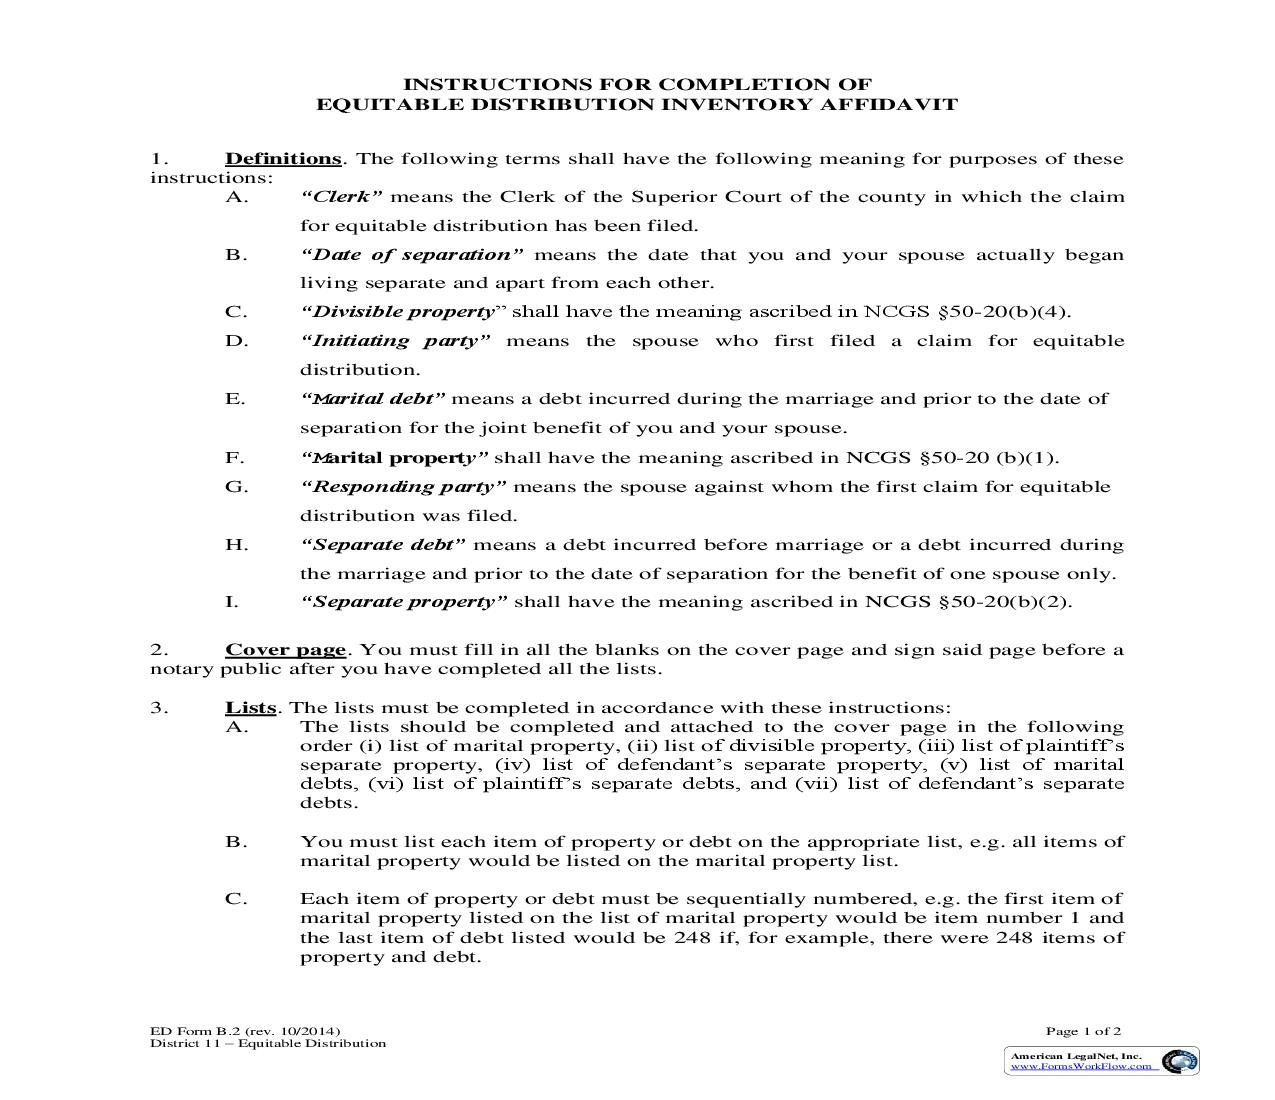 Instructions For Completion Of Equitable Distribution Inventory Affidavit {Form B.2} | Pdf Fpdf Doc Docx | North Carolina